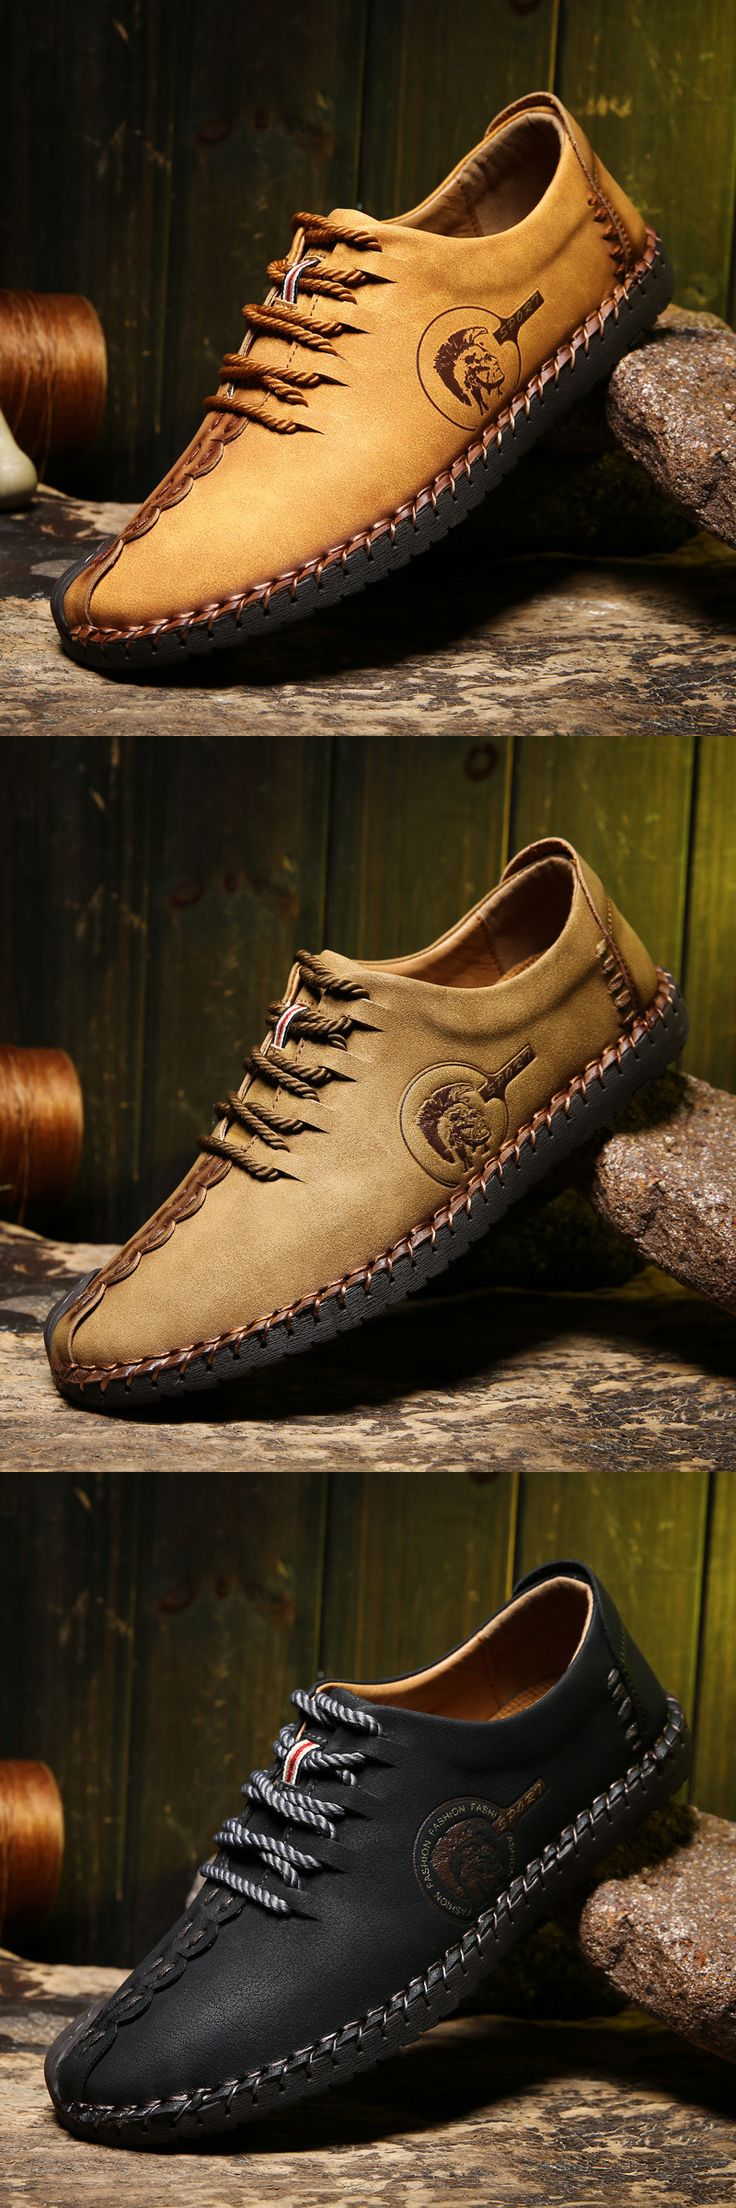 ce6f99cc50b5a These are nice stylish shoes.Men British Style Retro Stiching Soft Sole  Lace Up Flat Cap-toe Casual Shoes